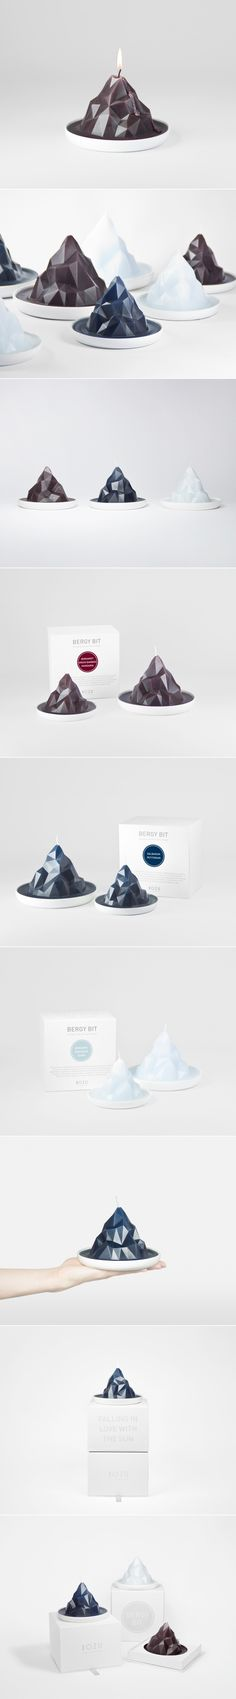 Bergy Bit Iceburg Candle — The Dieline | Packaging & Branding Design & Innovation News